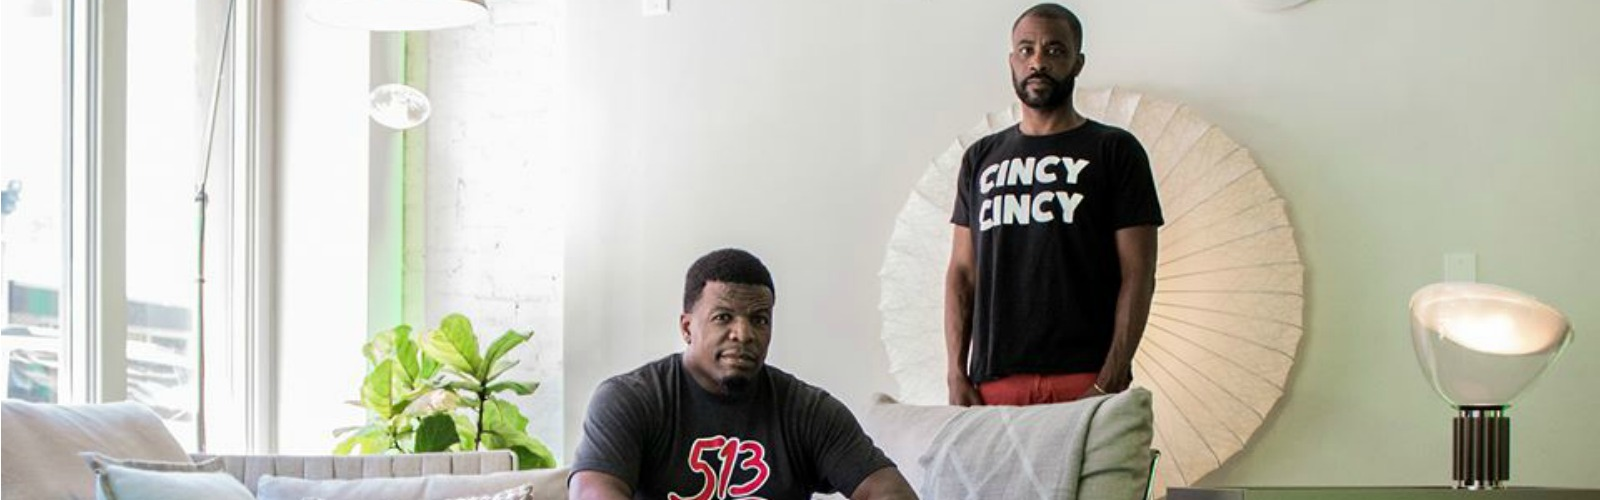 Cincinnati natives Tim&apos;m West (seated) and Derrick Bell  <span class=&apos;image-credits&apos;>Provided</span>